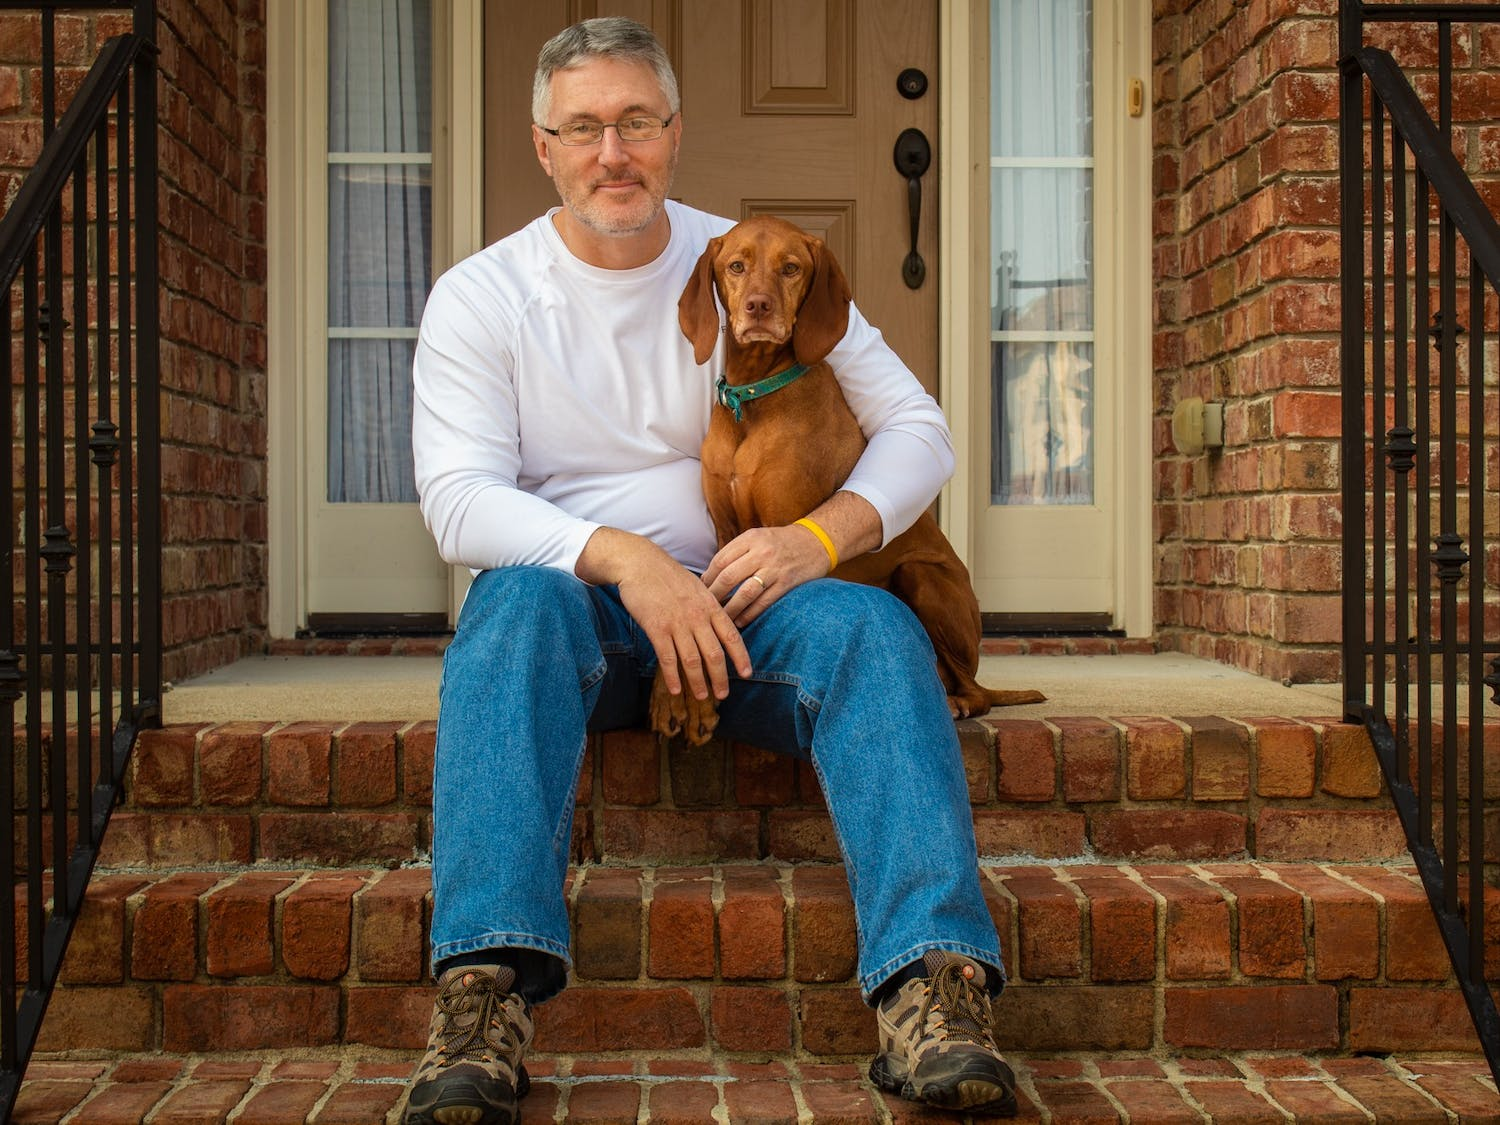 Jeff Nash, retiring CHCCS spokesperson, sits on the steps outside of his Apex home with his dog, Darby.